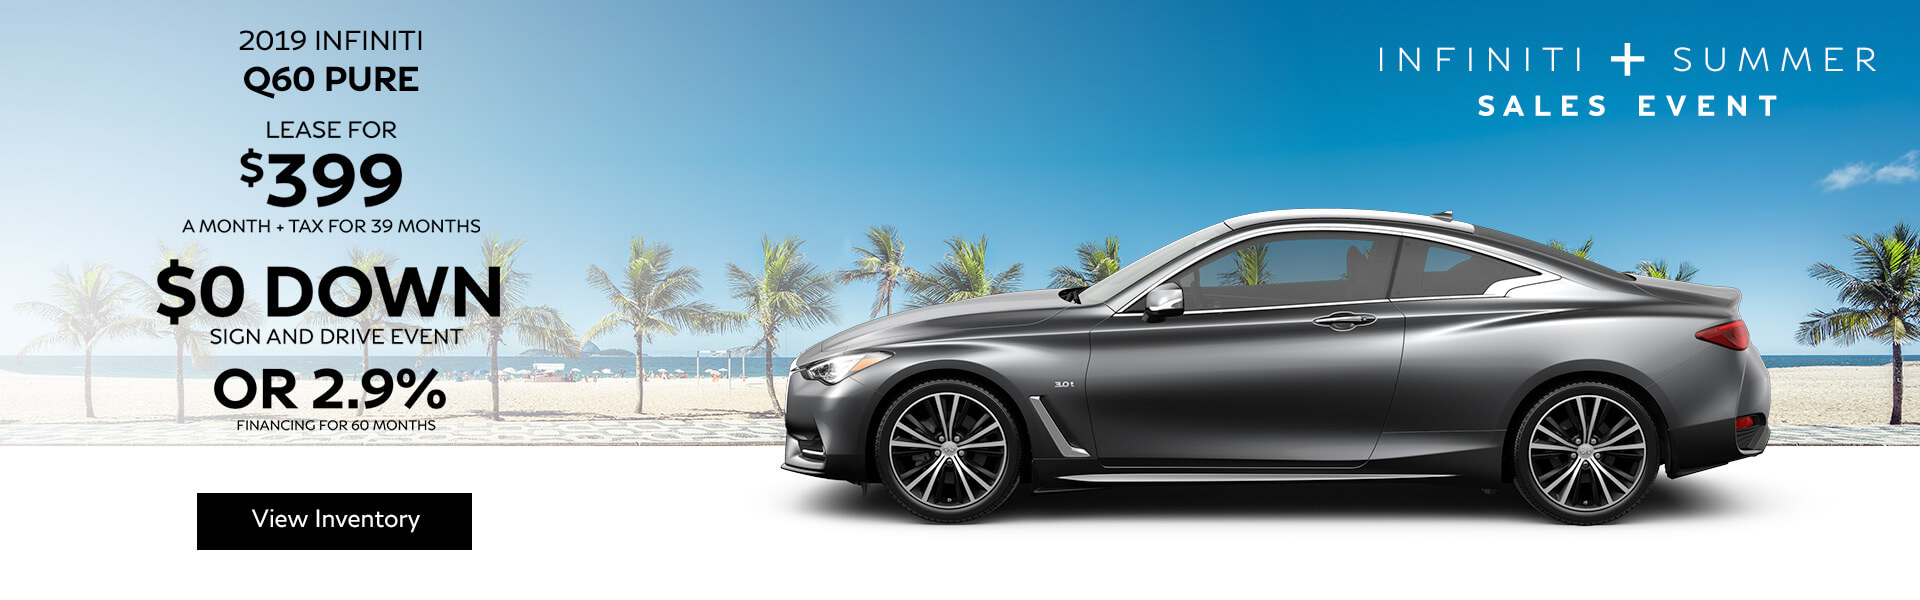 Q60 PURE - Lease for $399